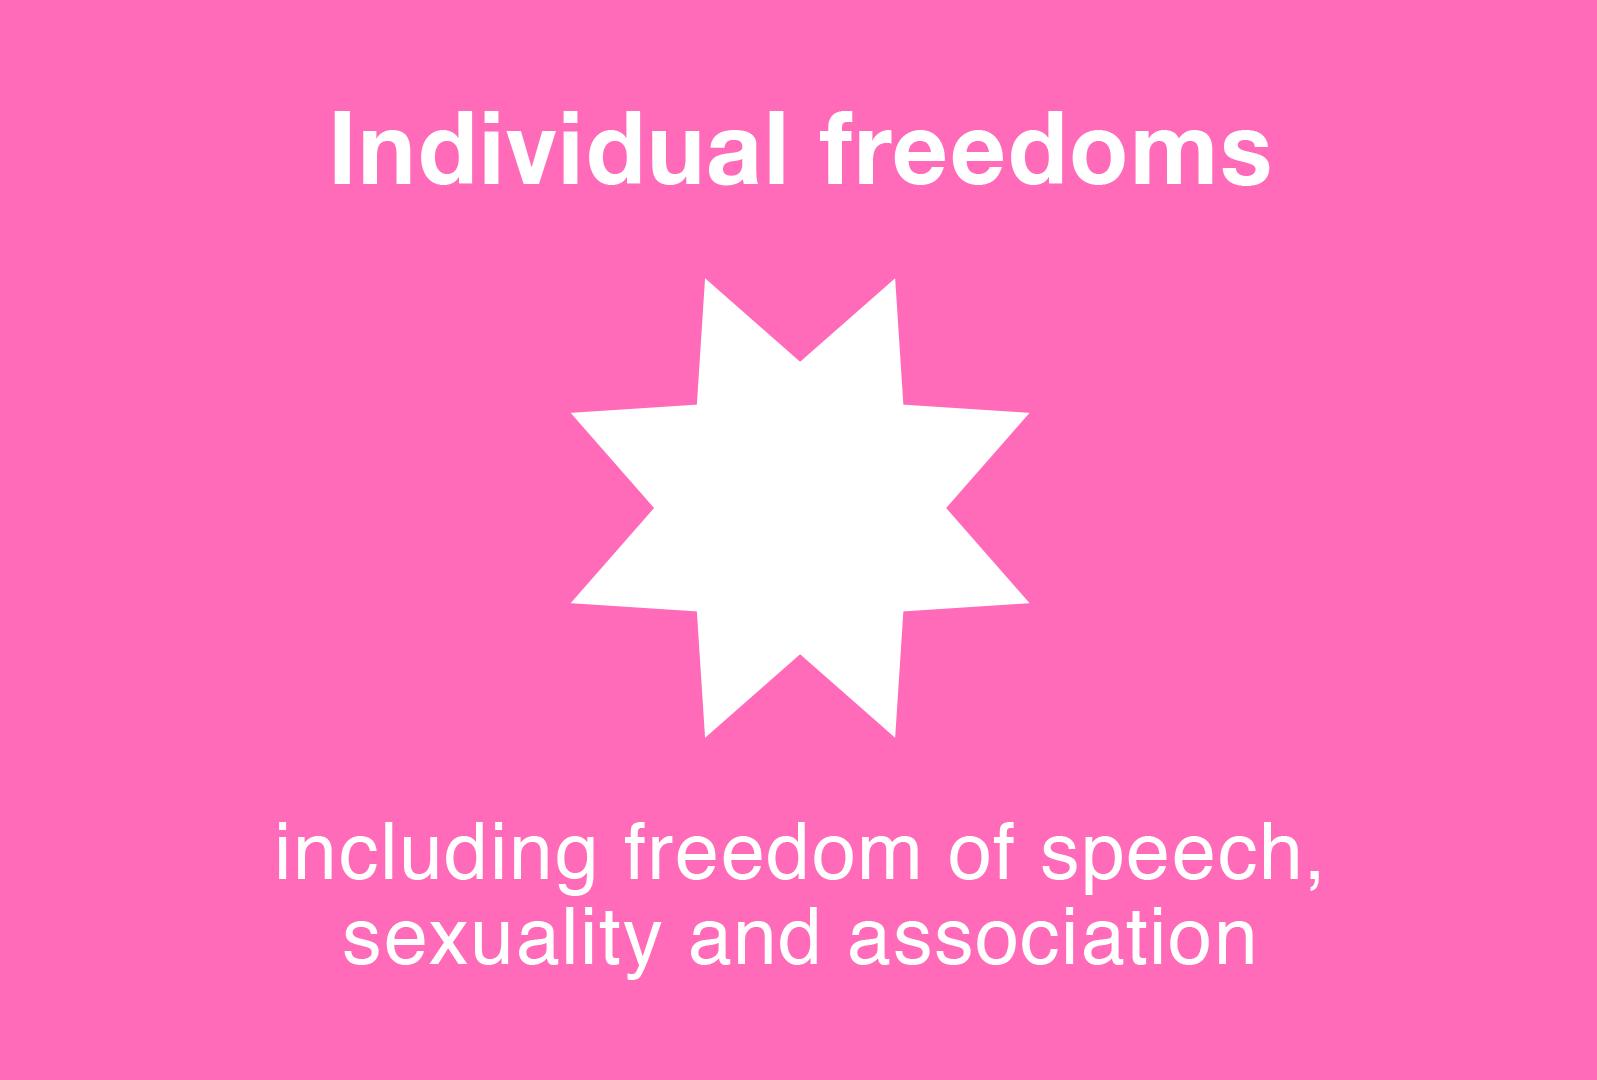 Individual freedoms including freedom of speech, sexuality and association